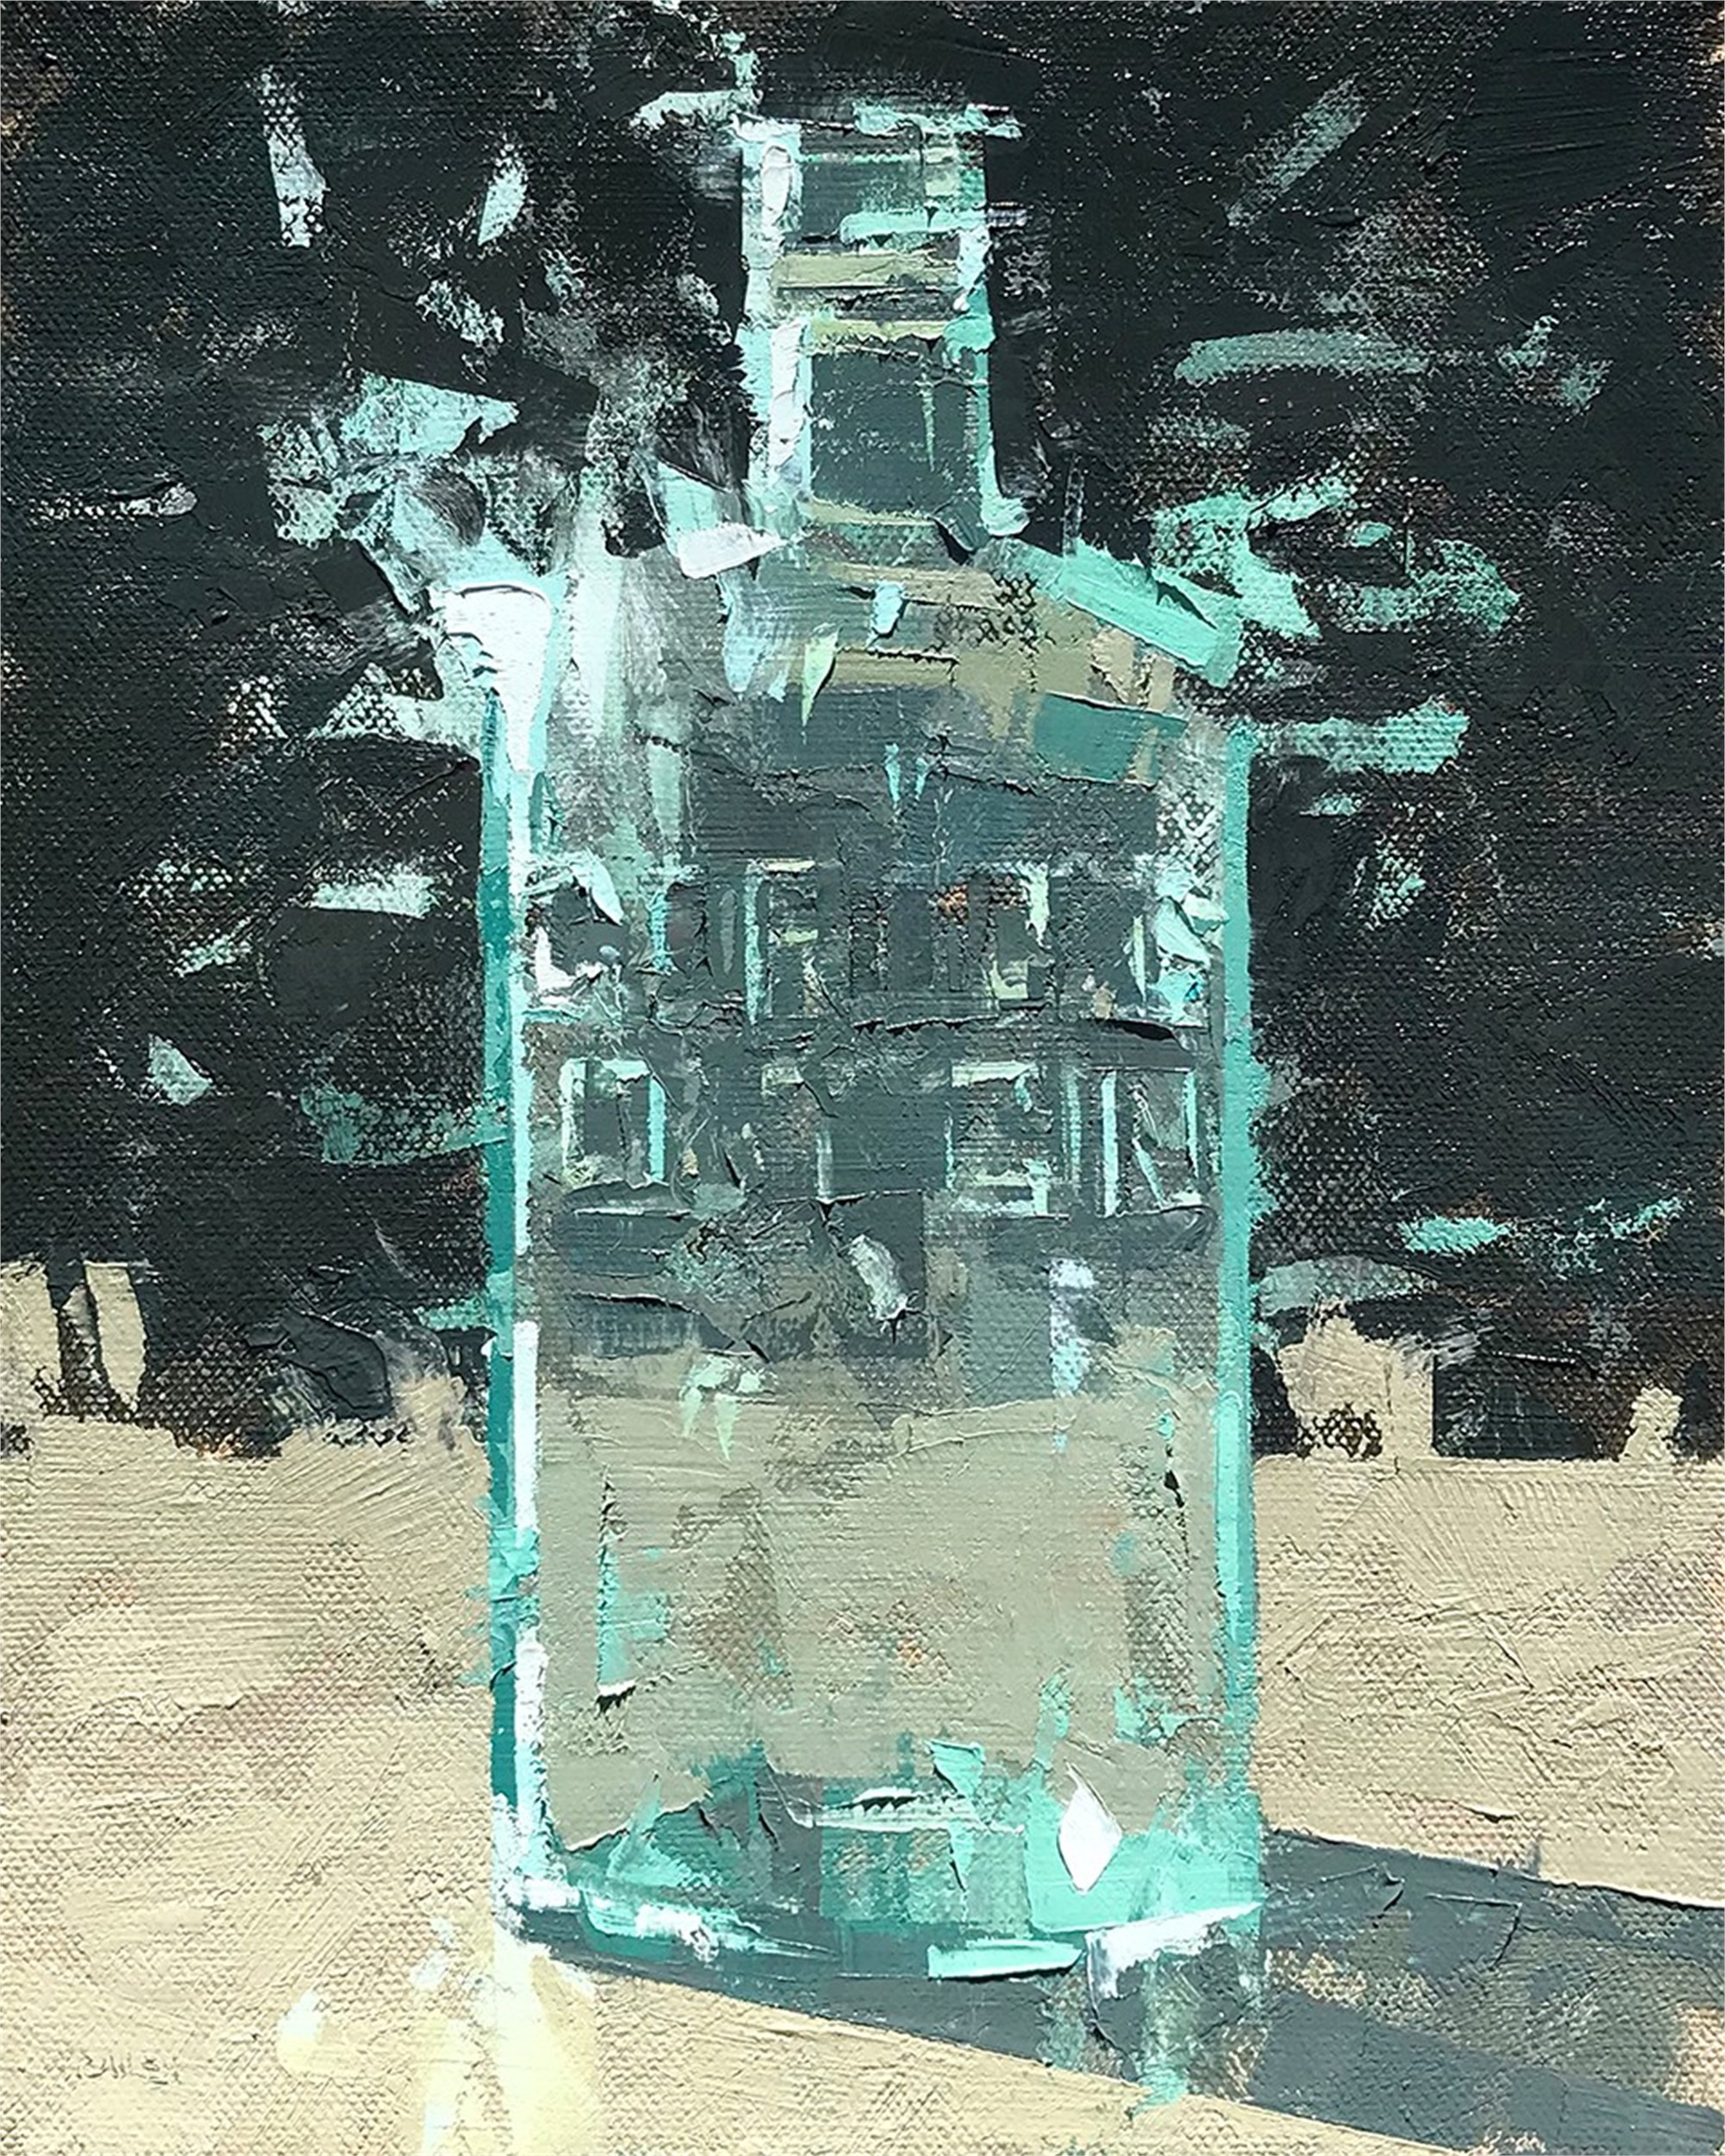 Gin Mini by Mark Andrew Bailey